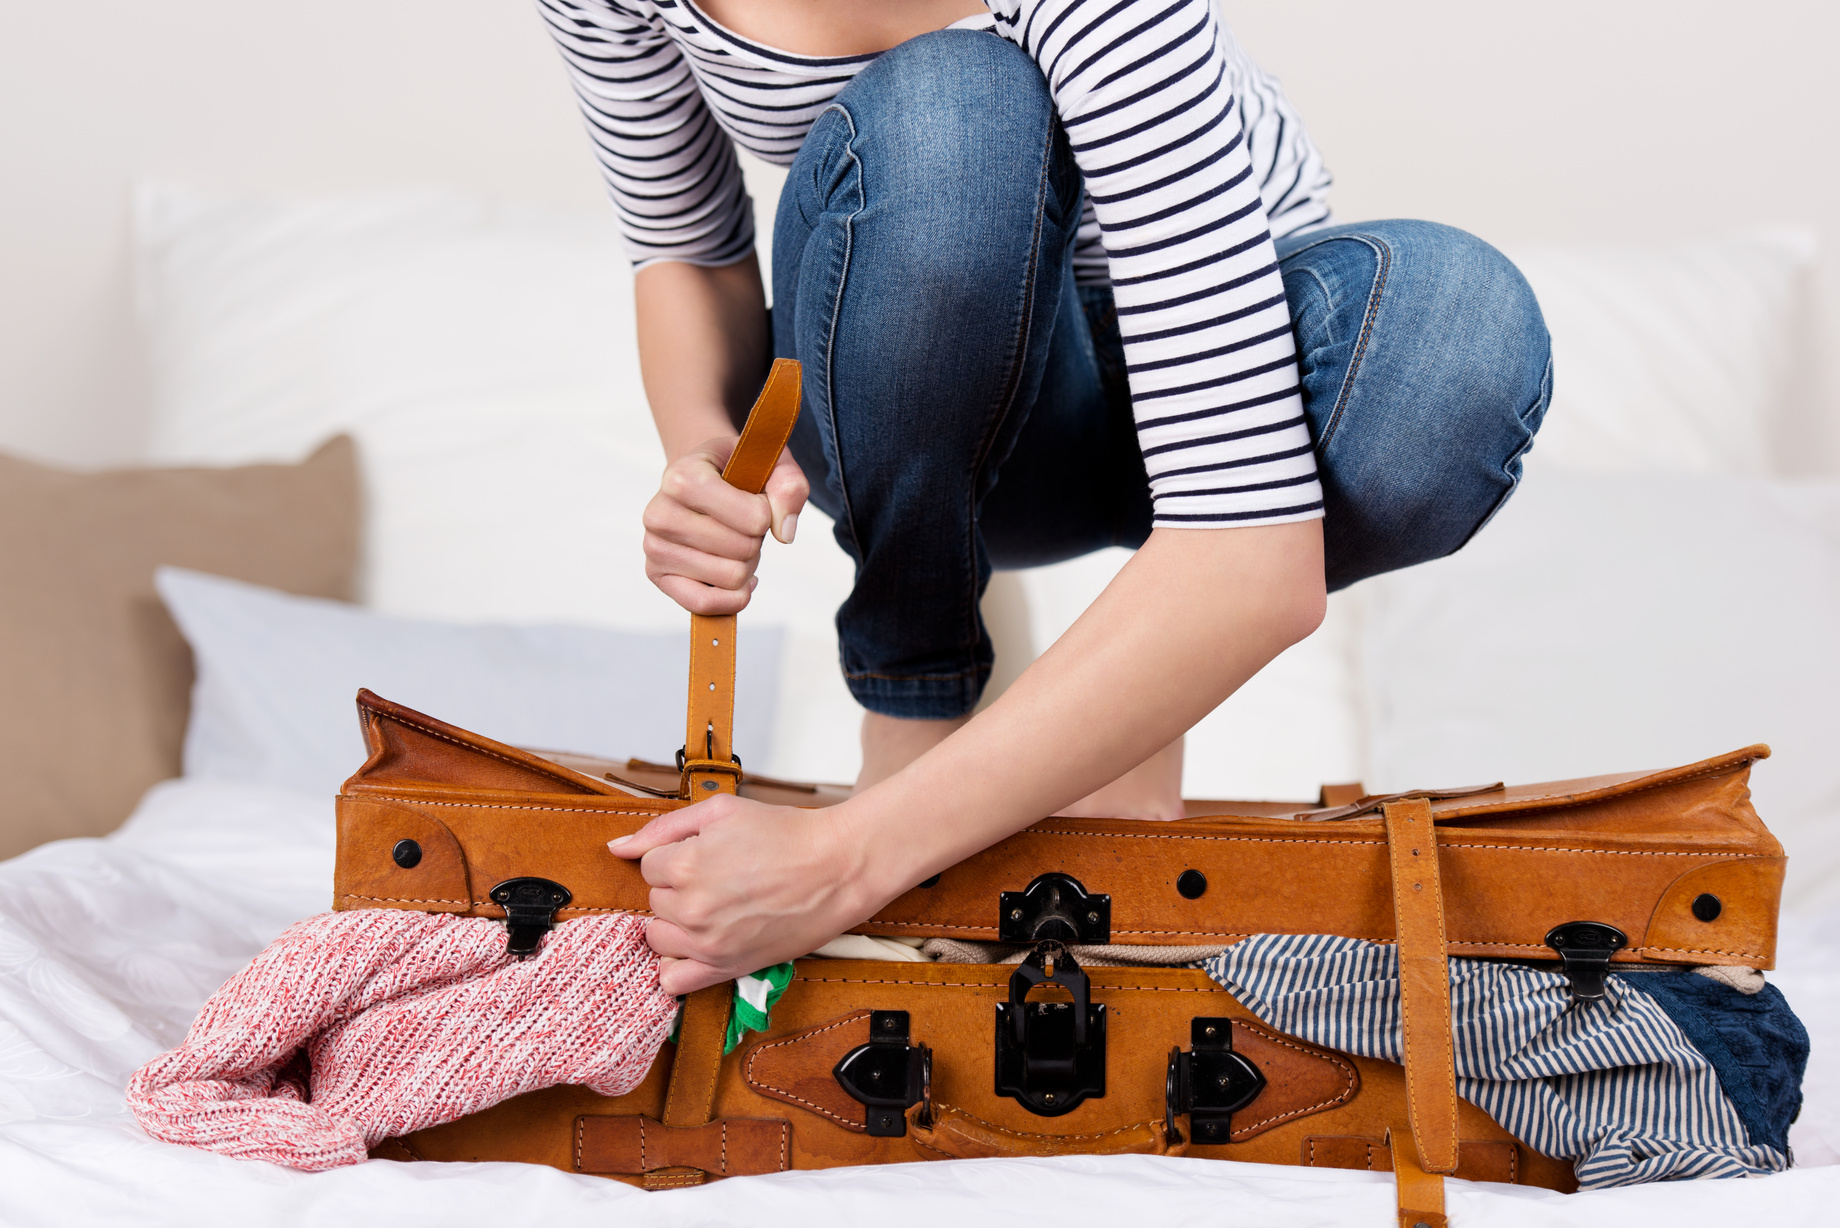 Midsection of young woman packing suitcase on bed illustrates what to do and what not to do when packing for your Rim Tours trip